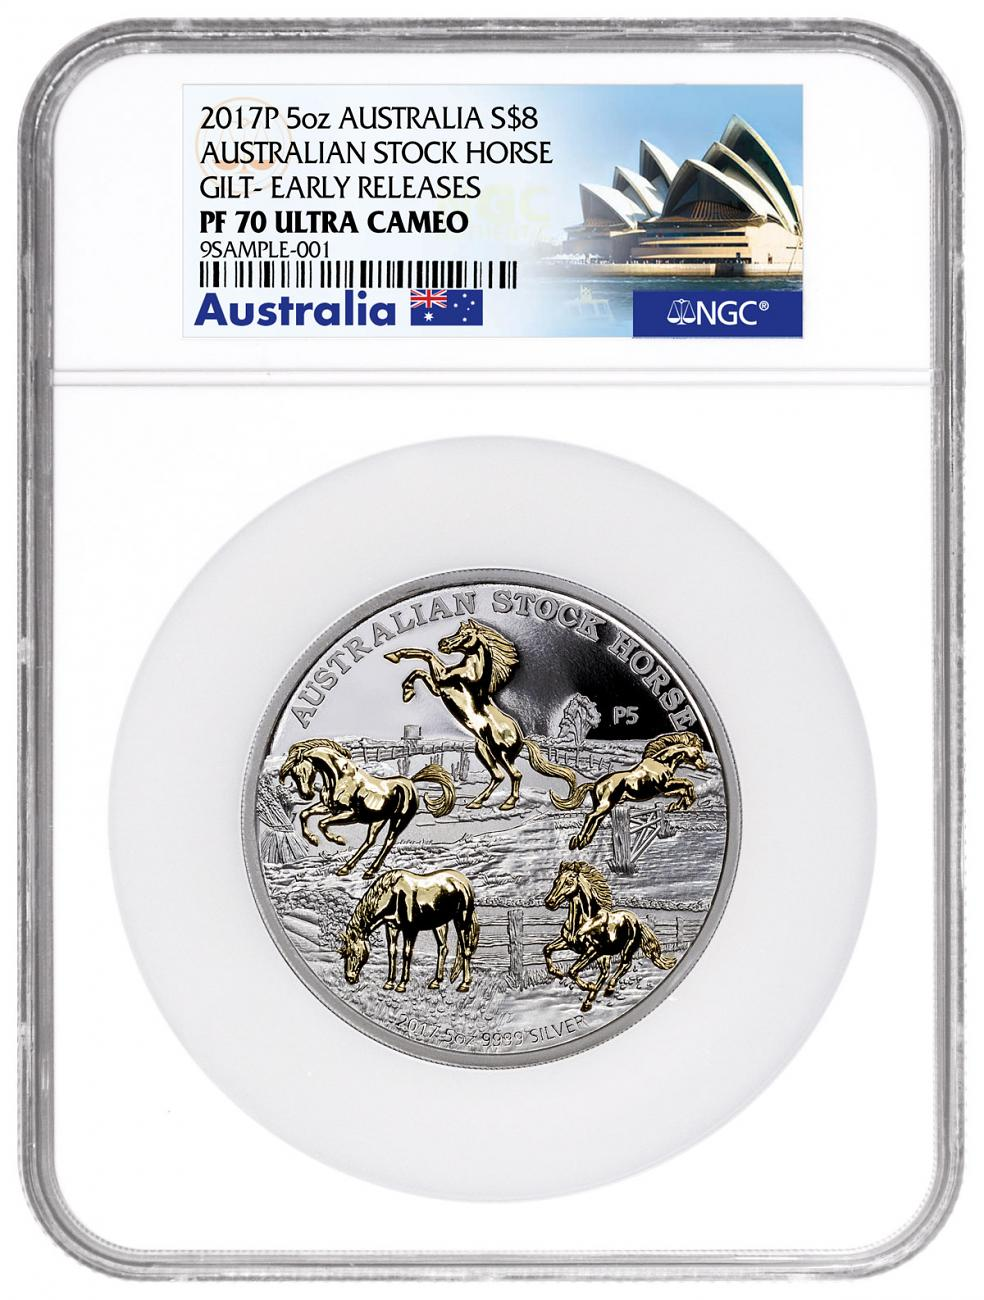 2017-P Australia Stock Horse - P5 Privy 5 oz Silver Gilt Proof $8 Coin NGC PF70 UC ER Exclusive Australia Label